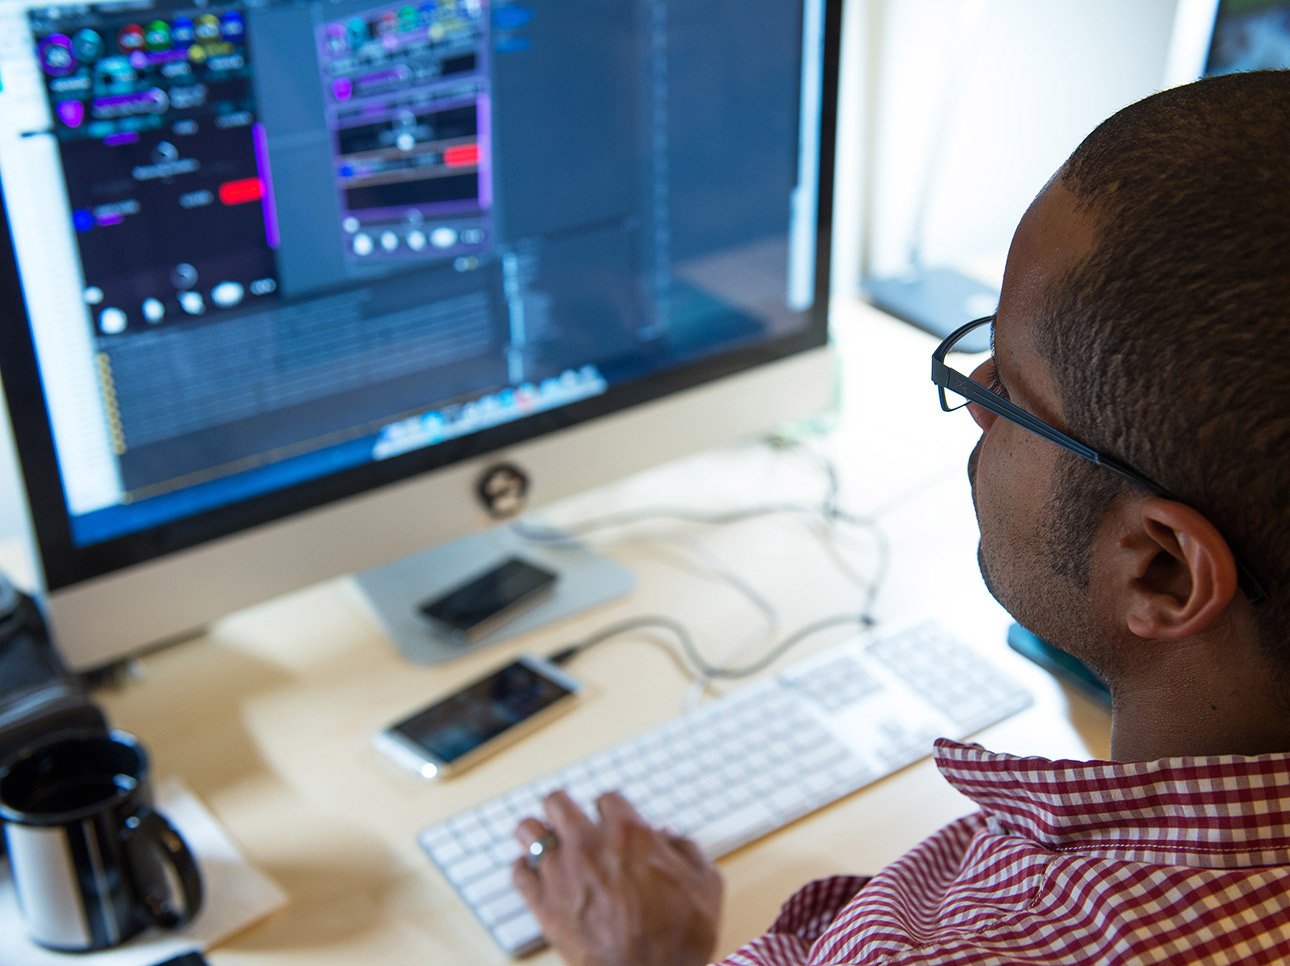 Man working with digital software at desk